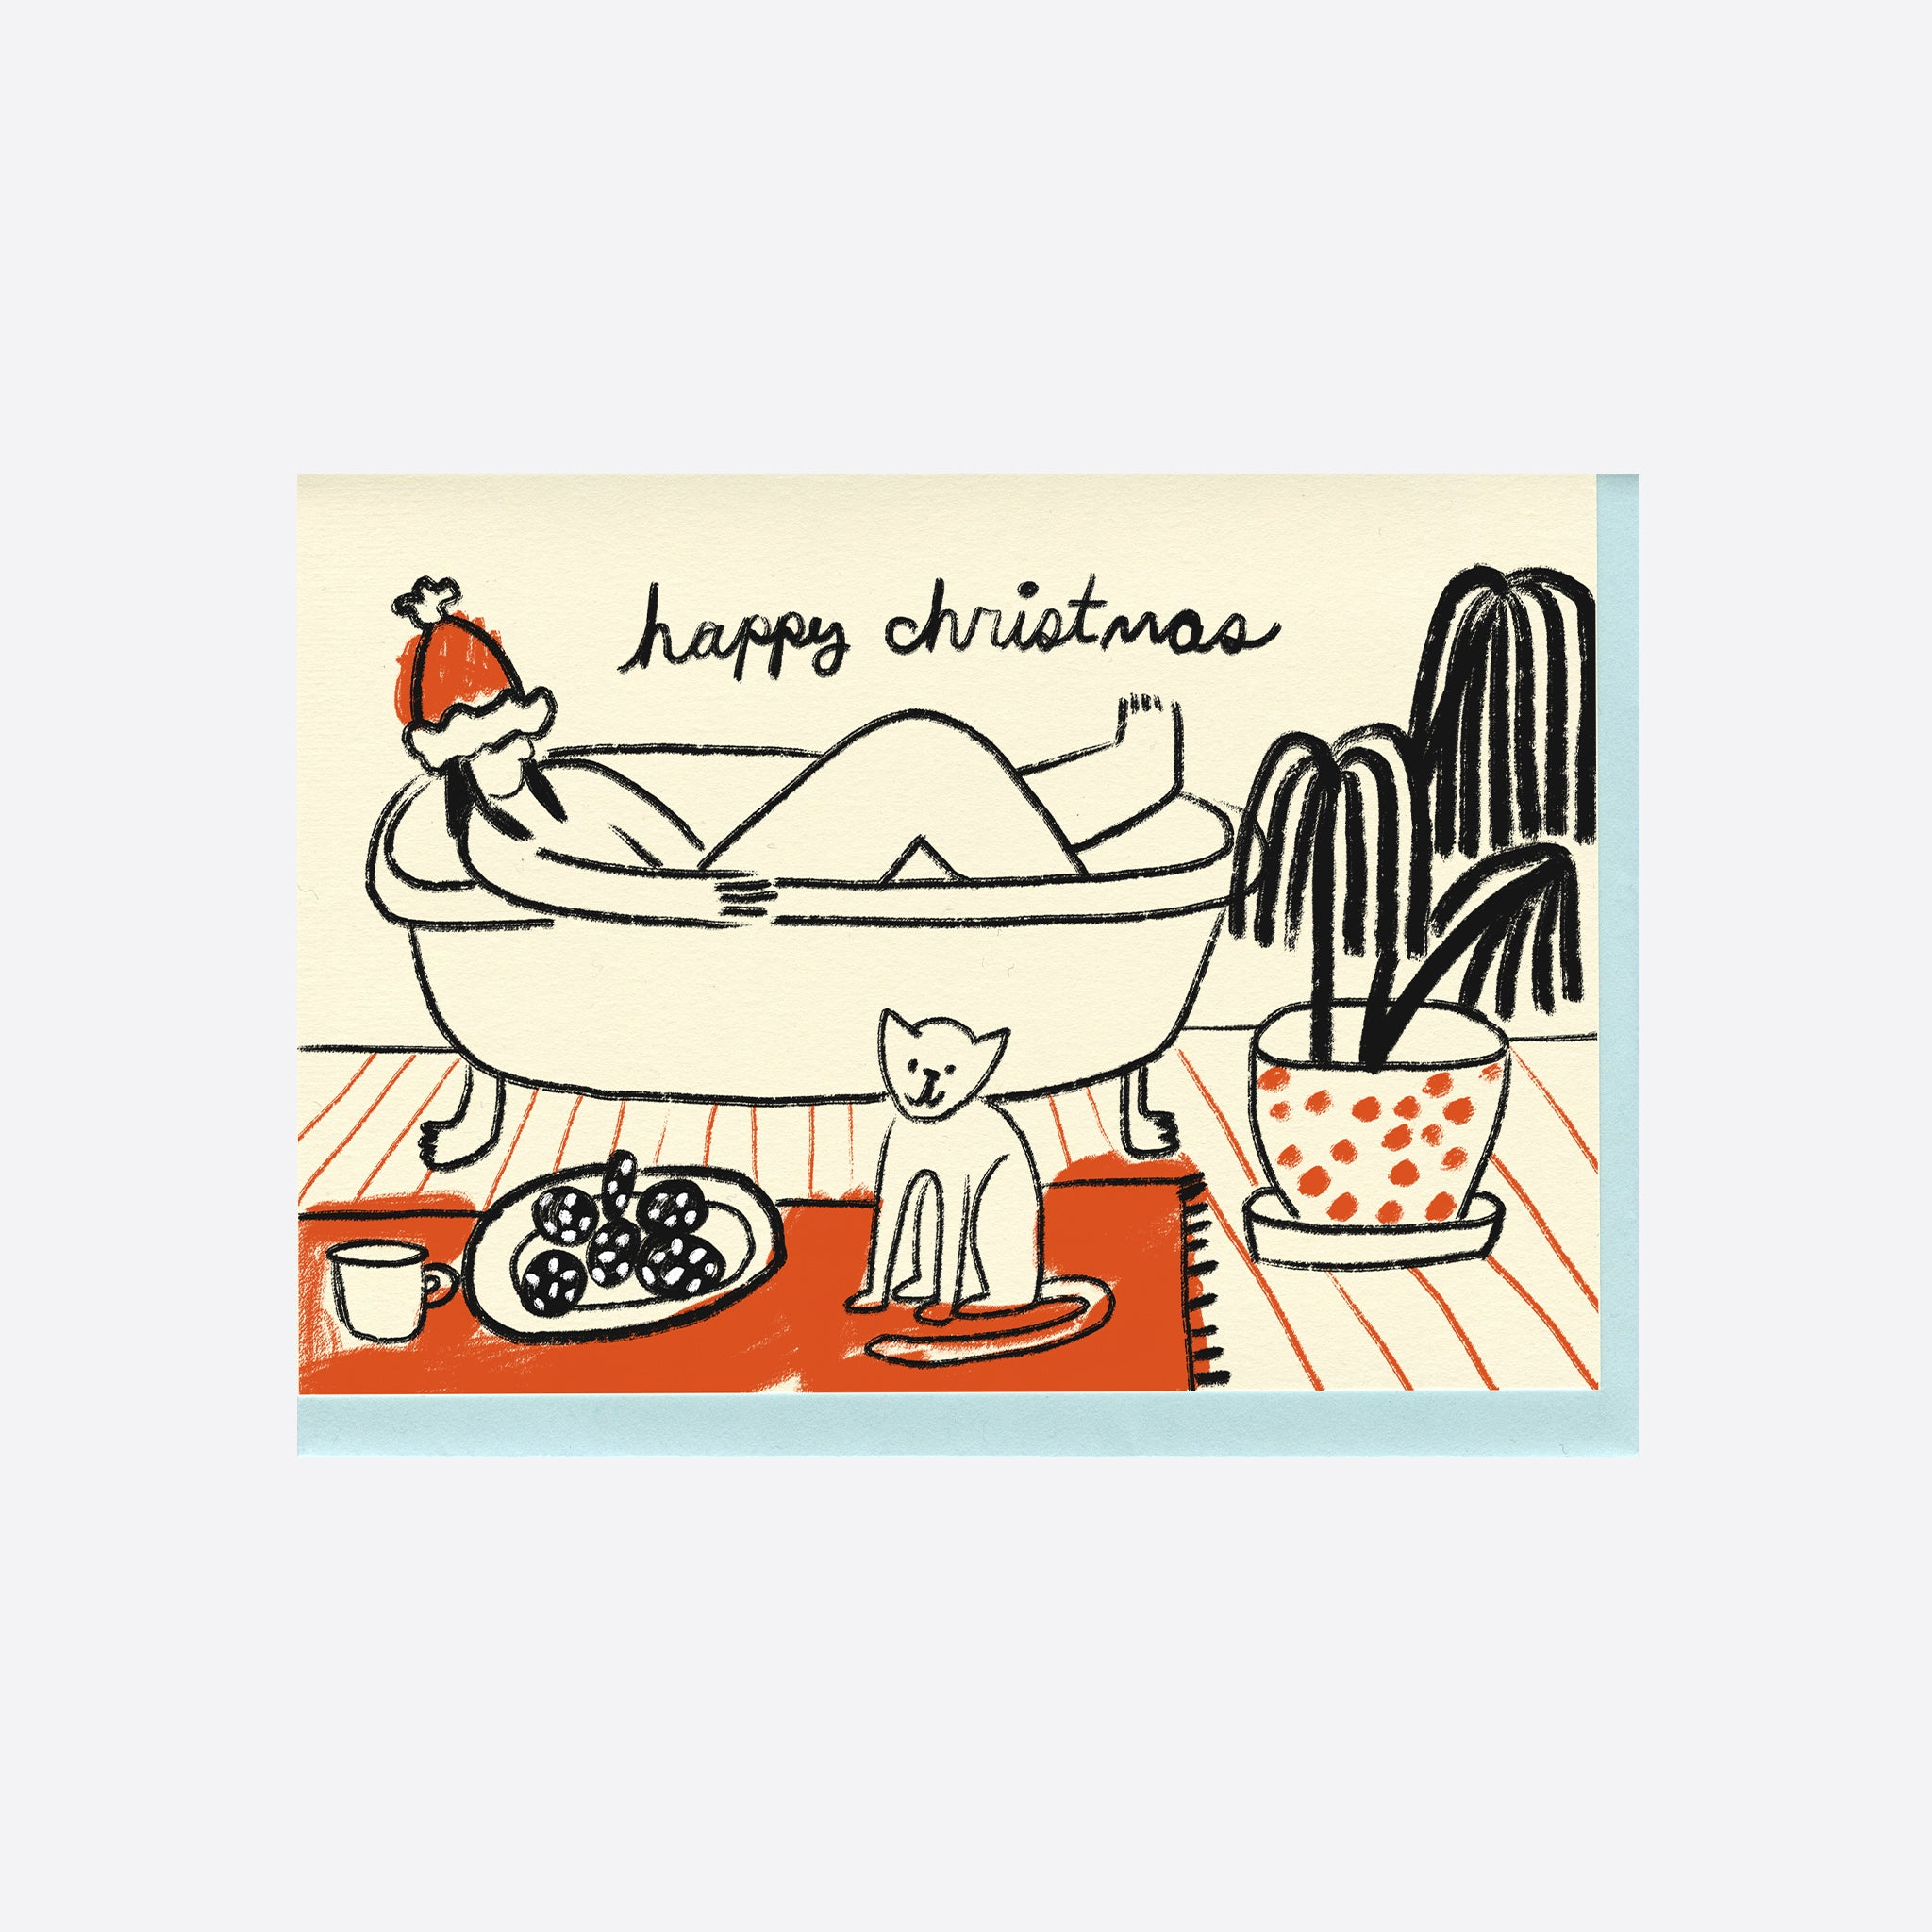 People I've Loved Christmas Bath Card